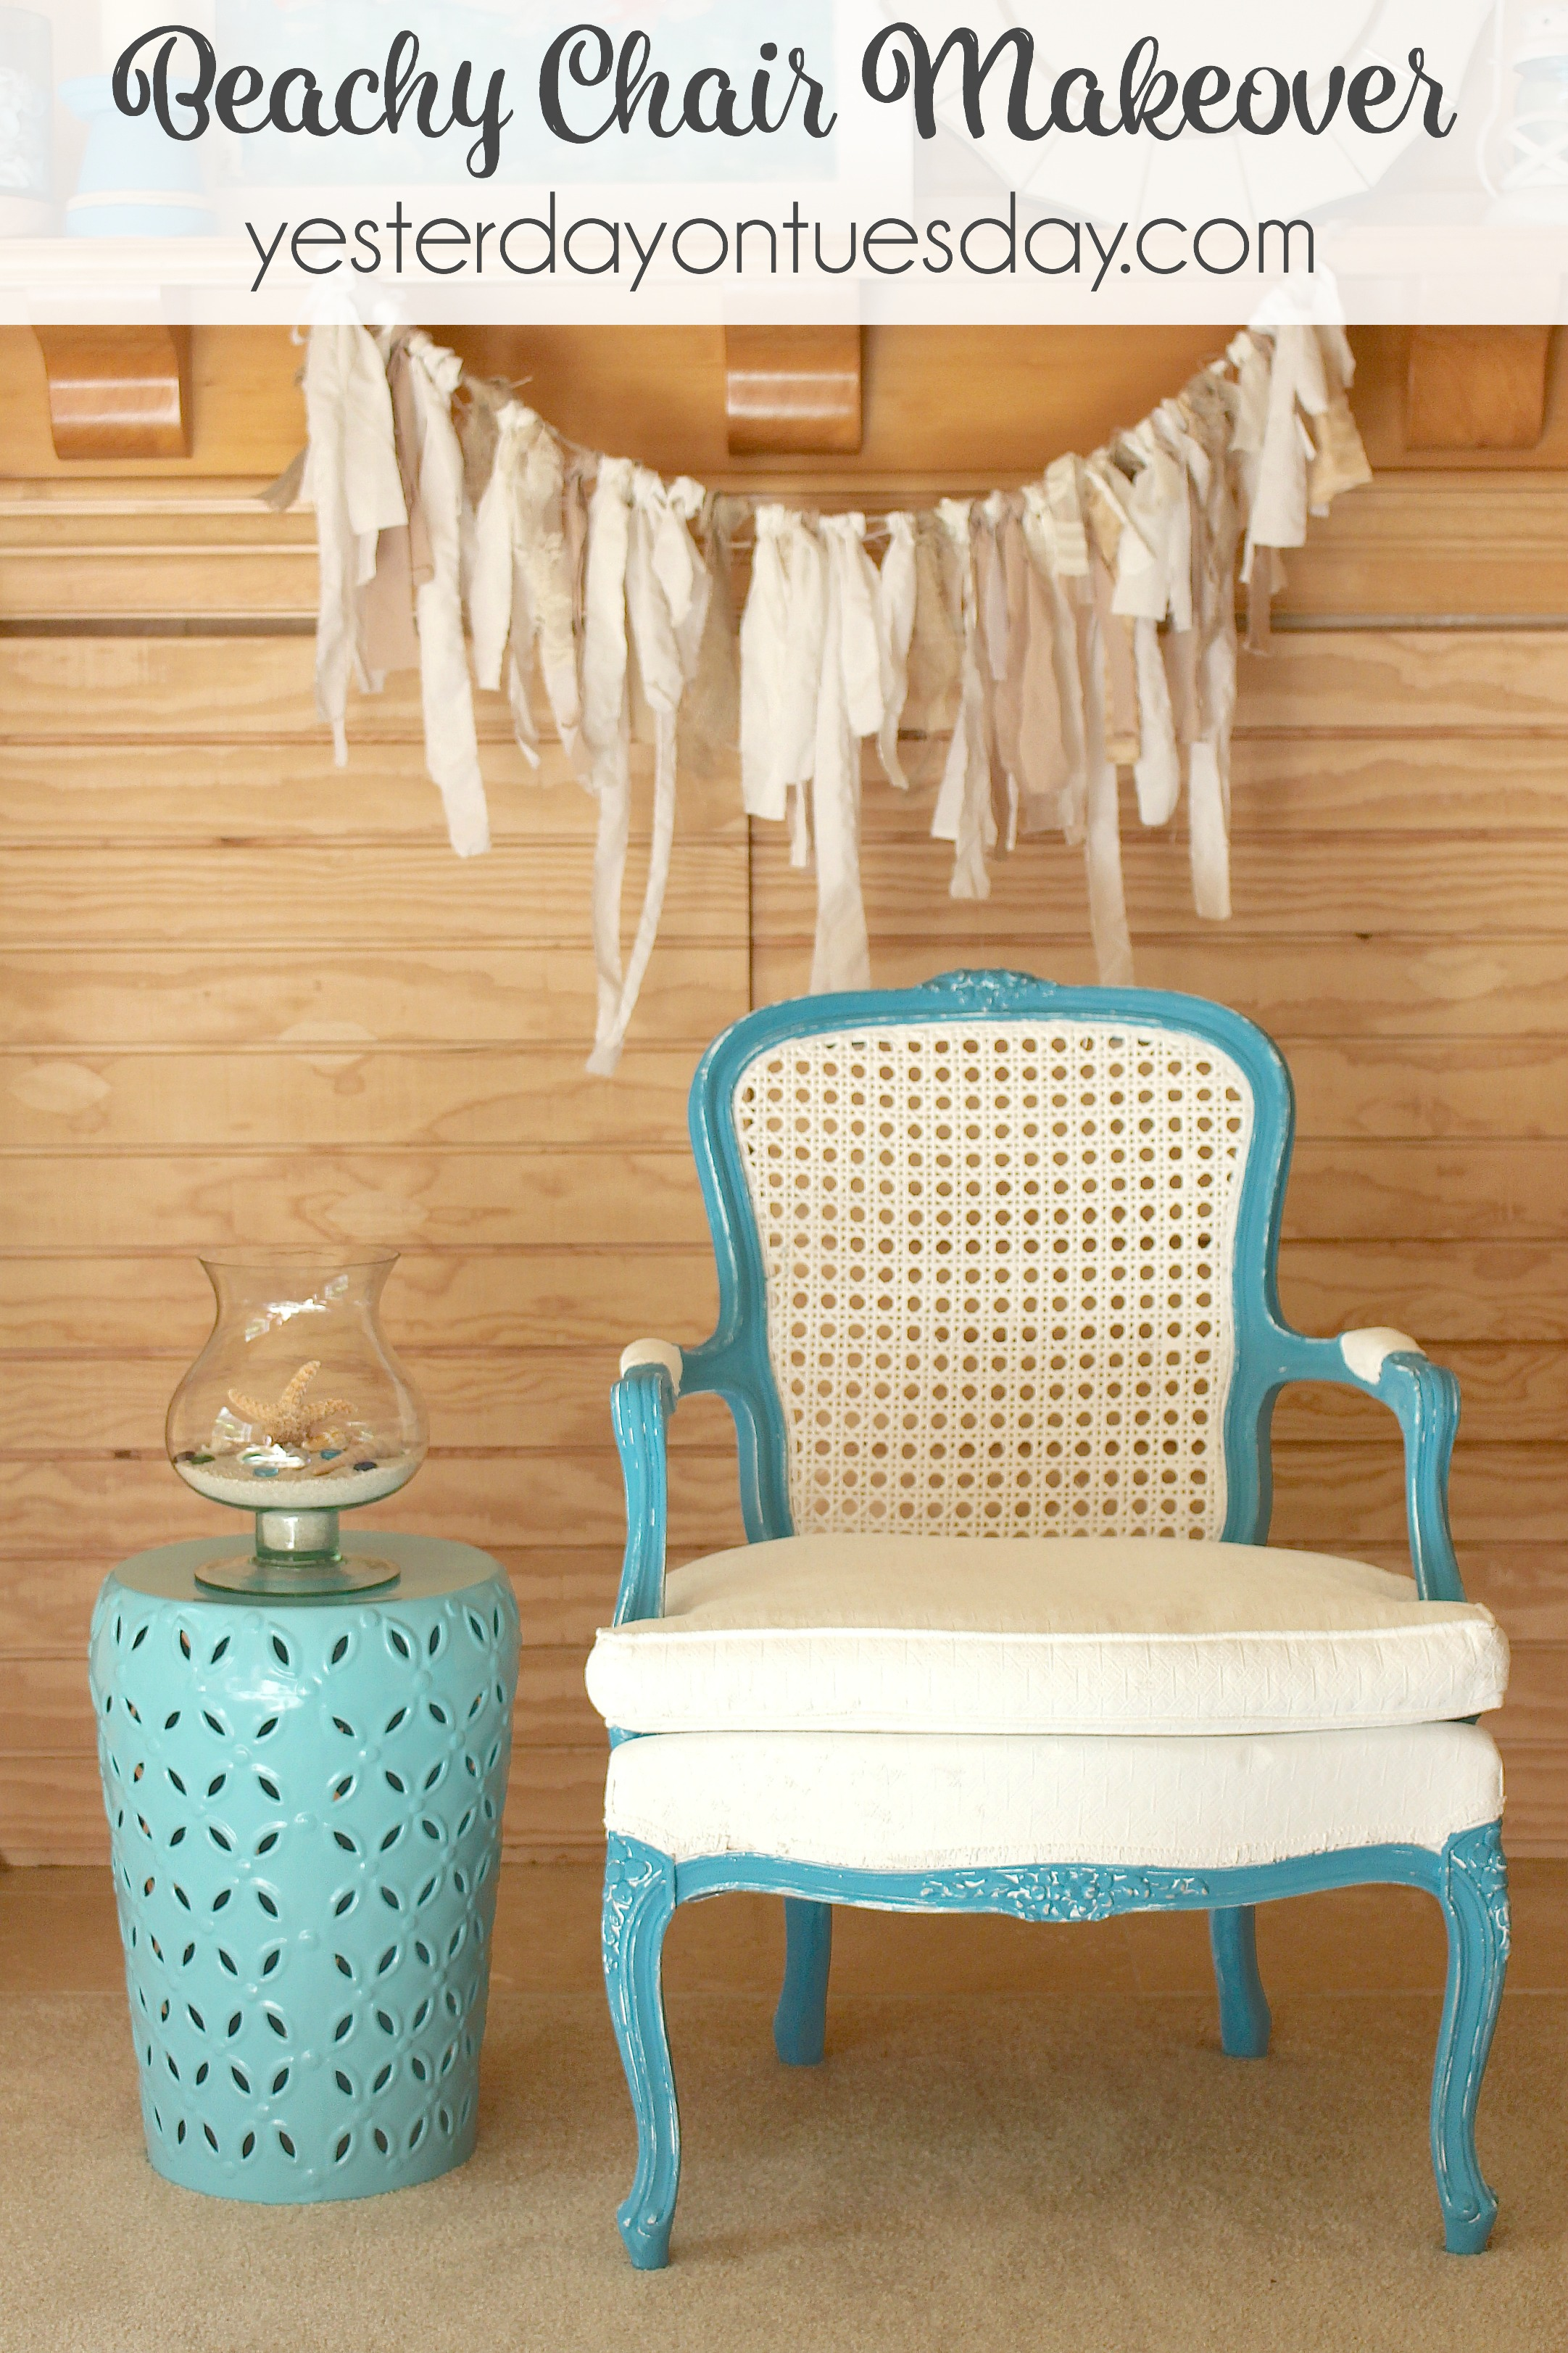 Beachy Chair Makeover